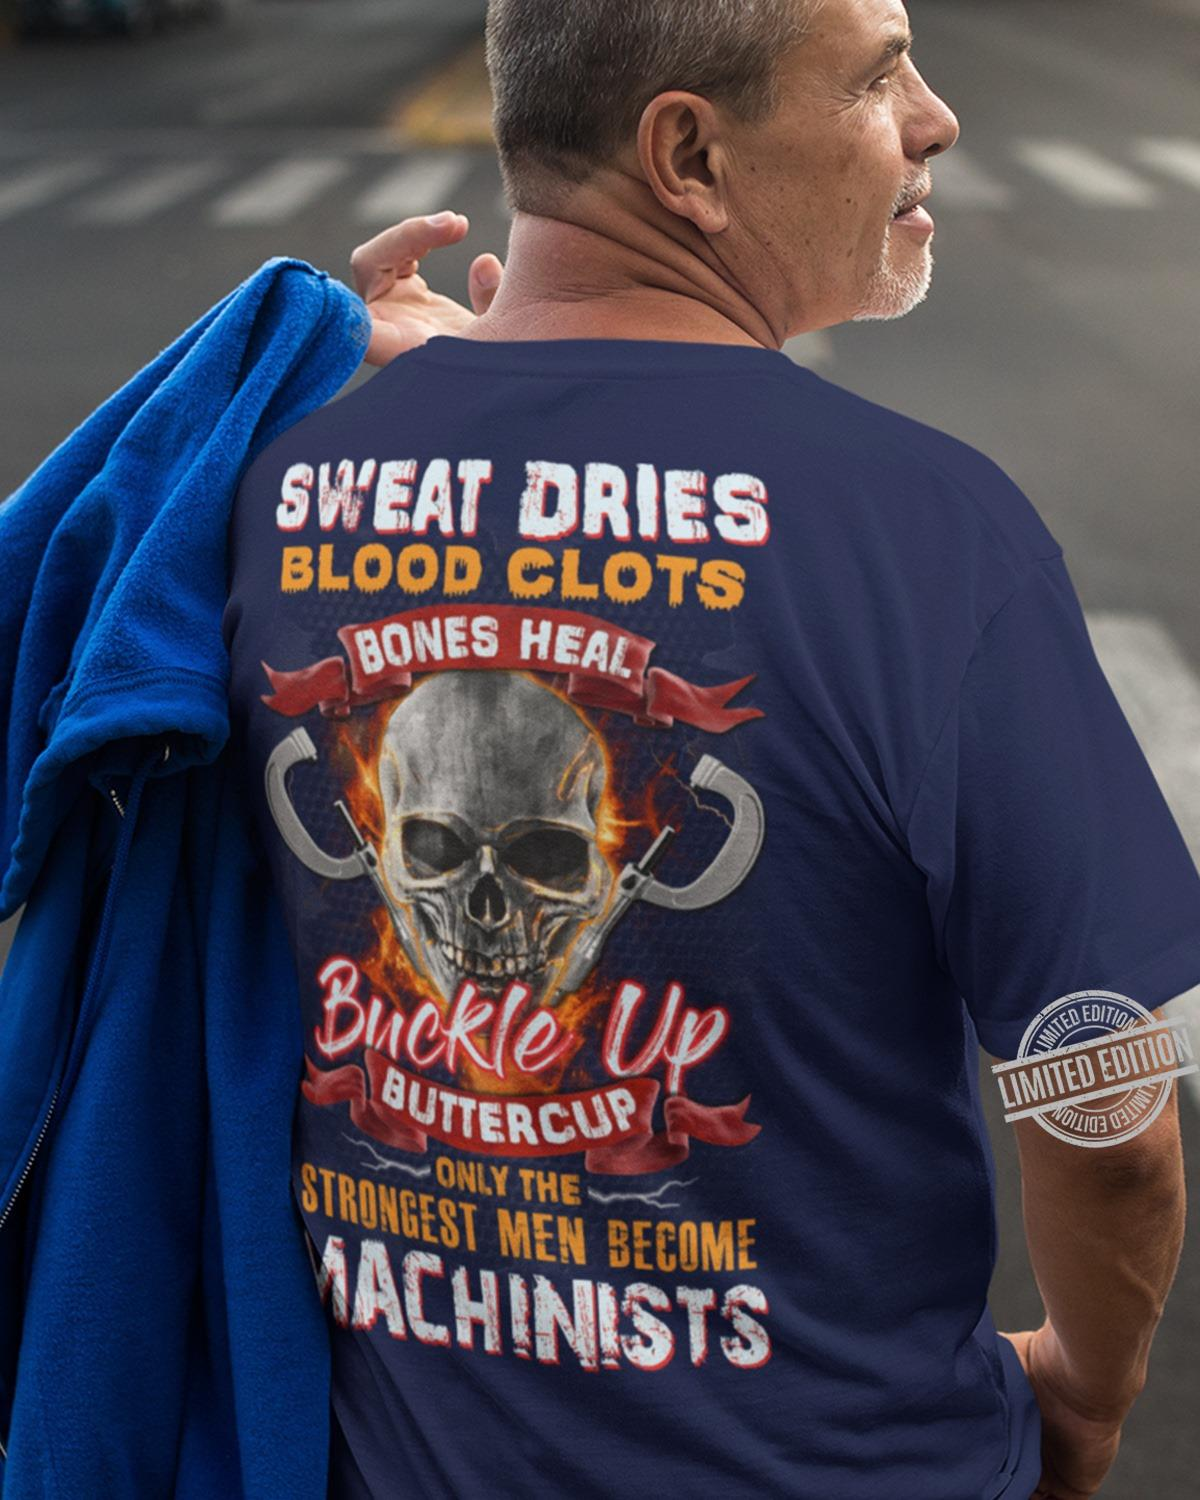 Sweat Dries Blood Clots Bones Heal Buckle Up Buutercup Only The Strongest Men Become Machinists Shirt